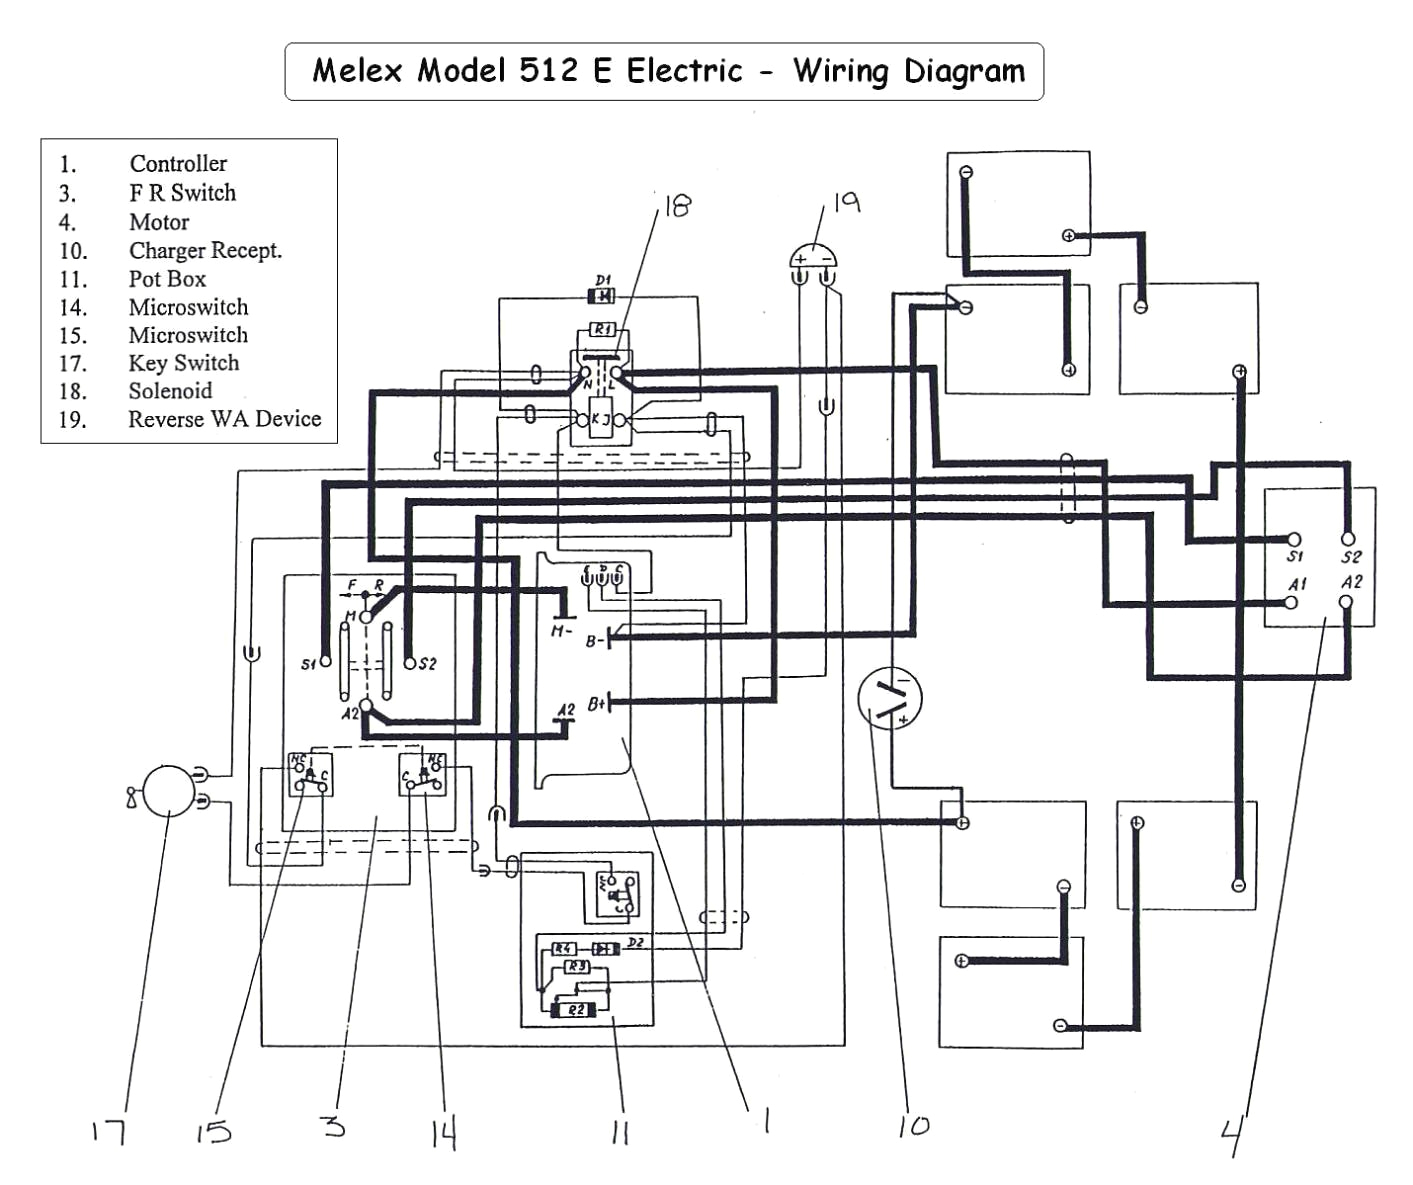 wiring diagram for 07 star golf cart wiring diagram list 2009 star golf cart wiring diagram star golf cart wiring diagram